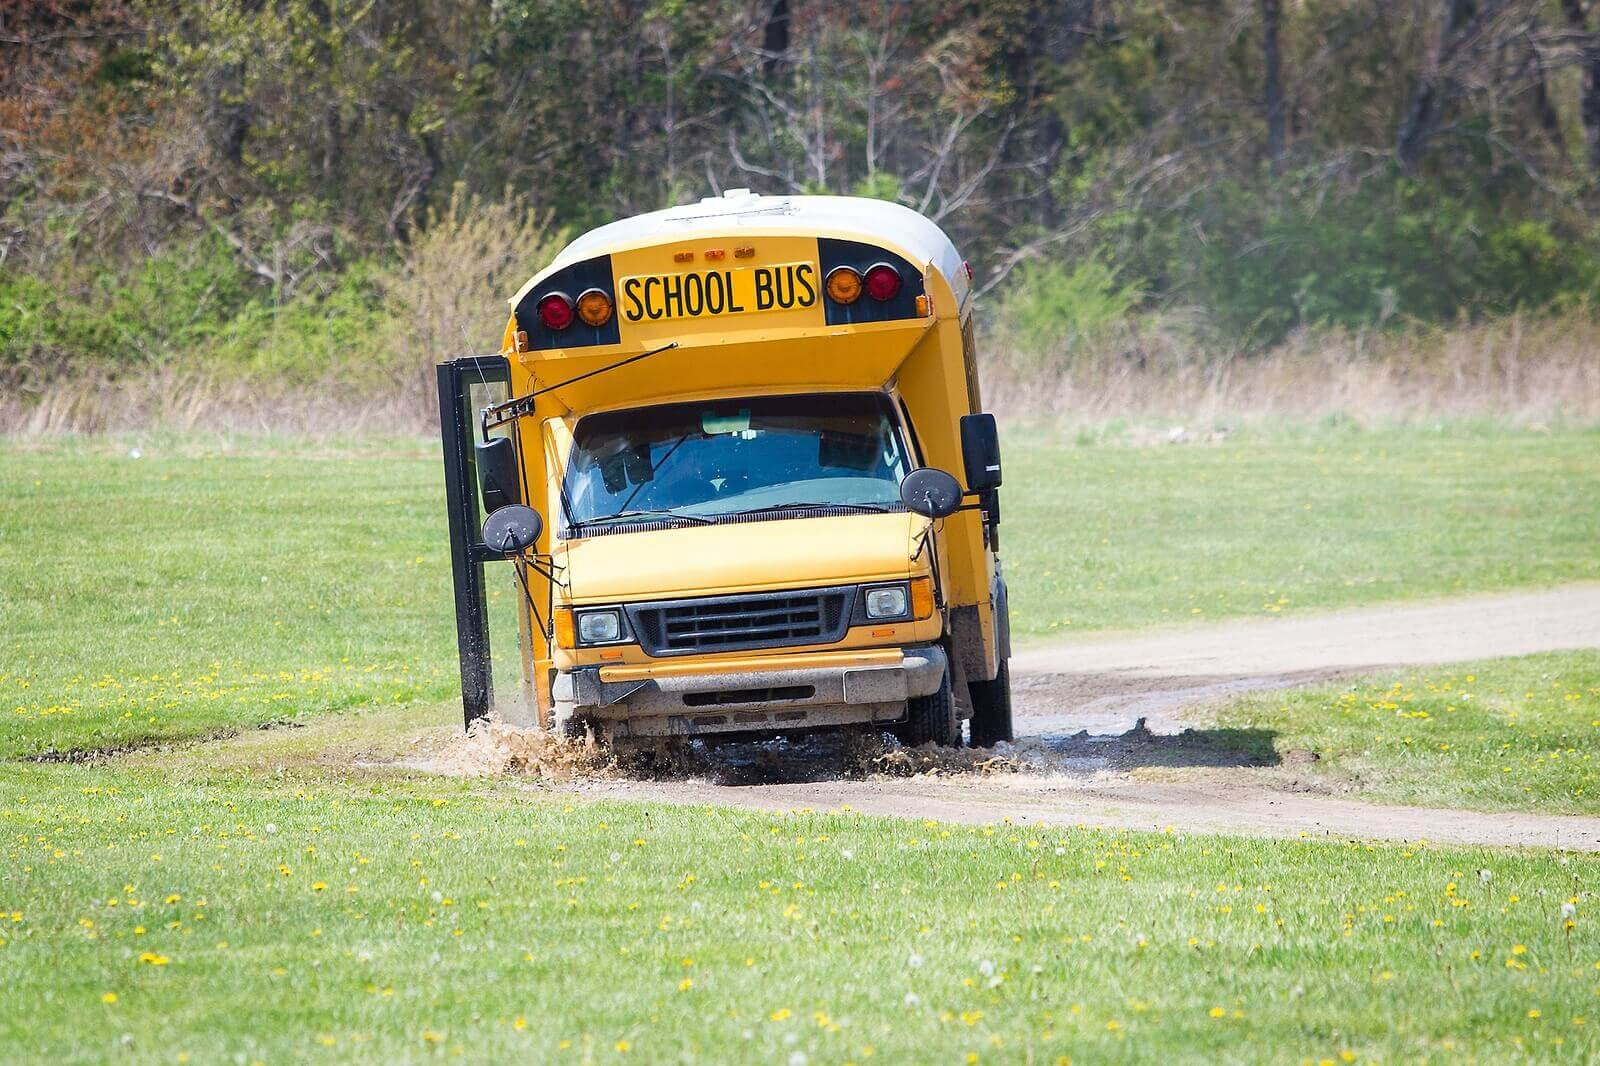 school bus accidents lawyer - las vegas, nv